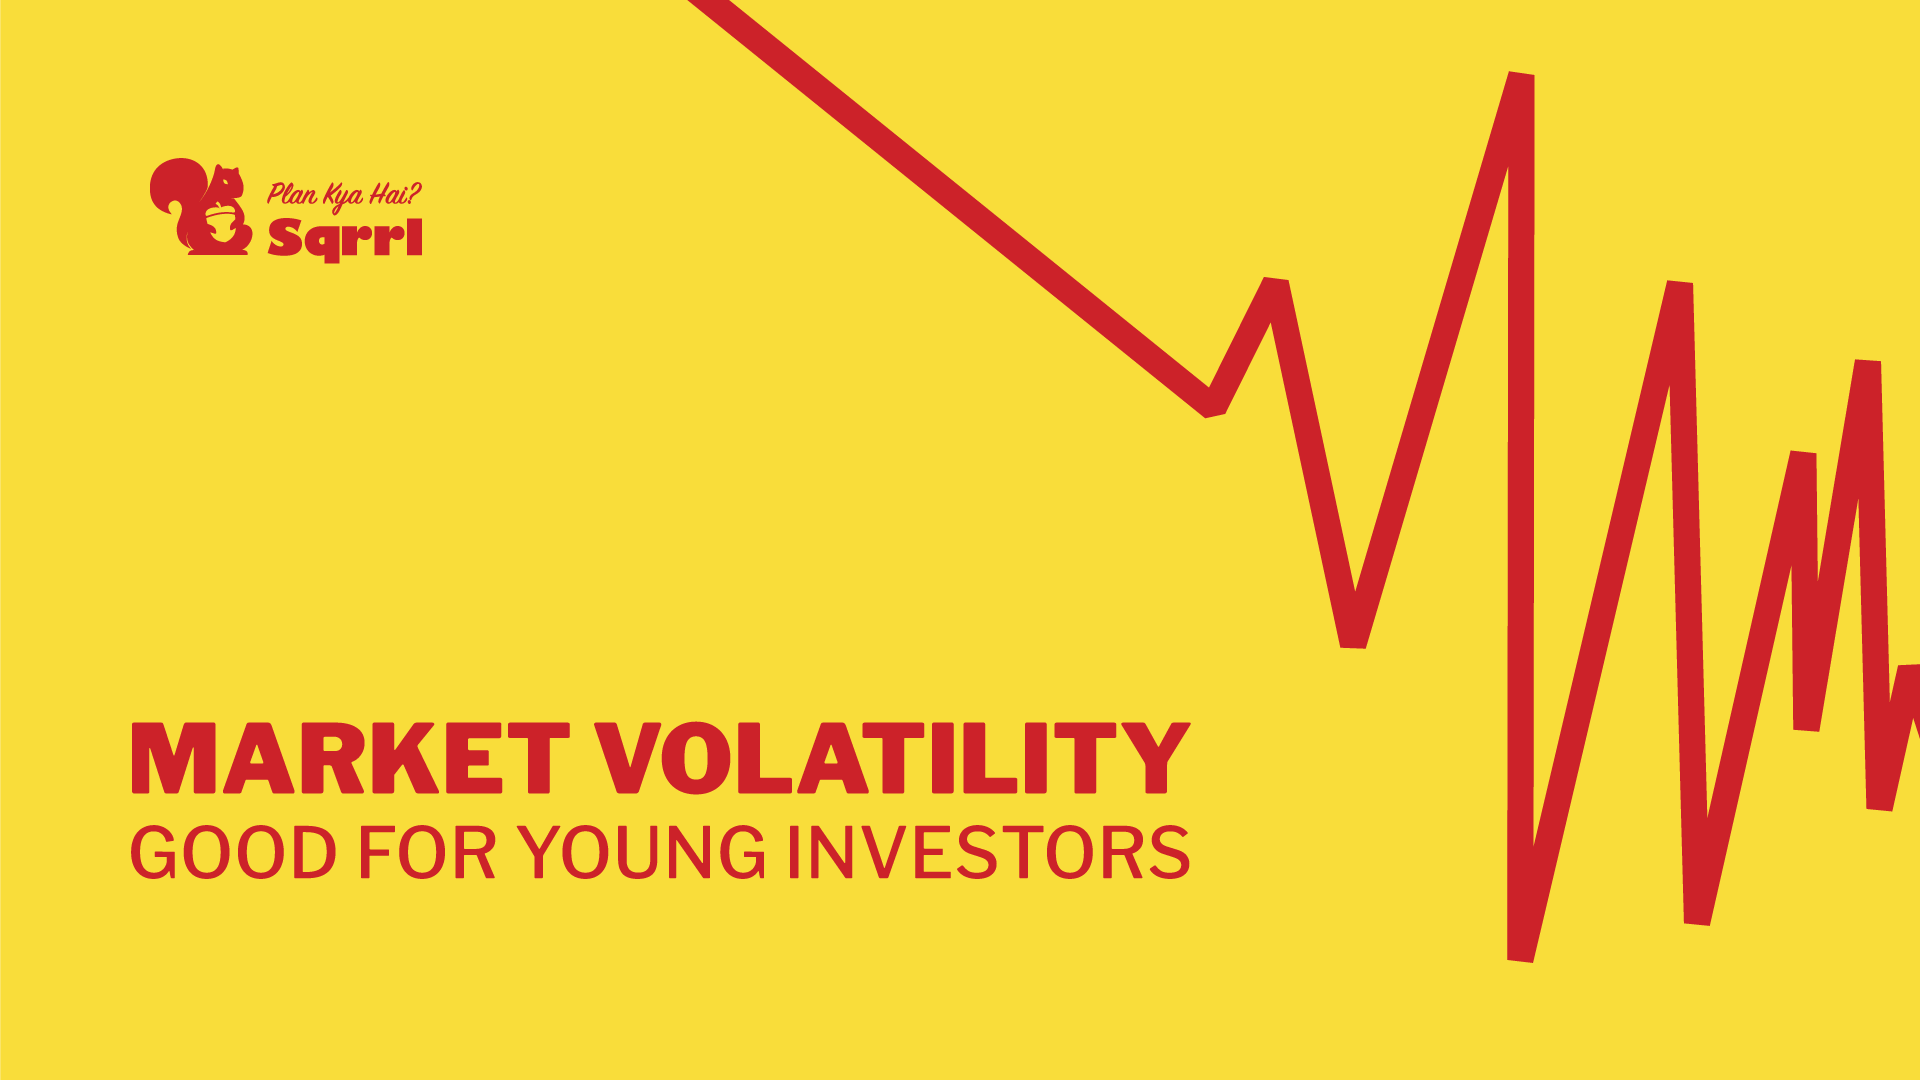 Market Volatility is Good for Young Mutual Fund Investors